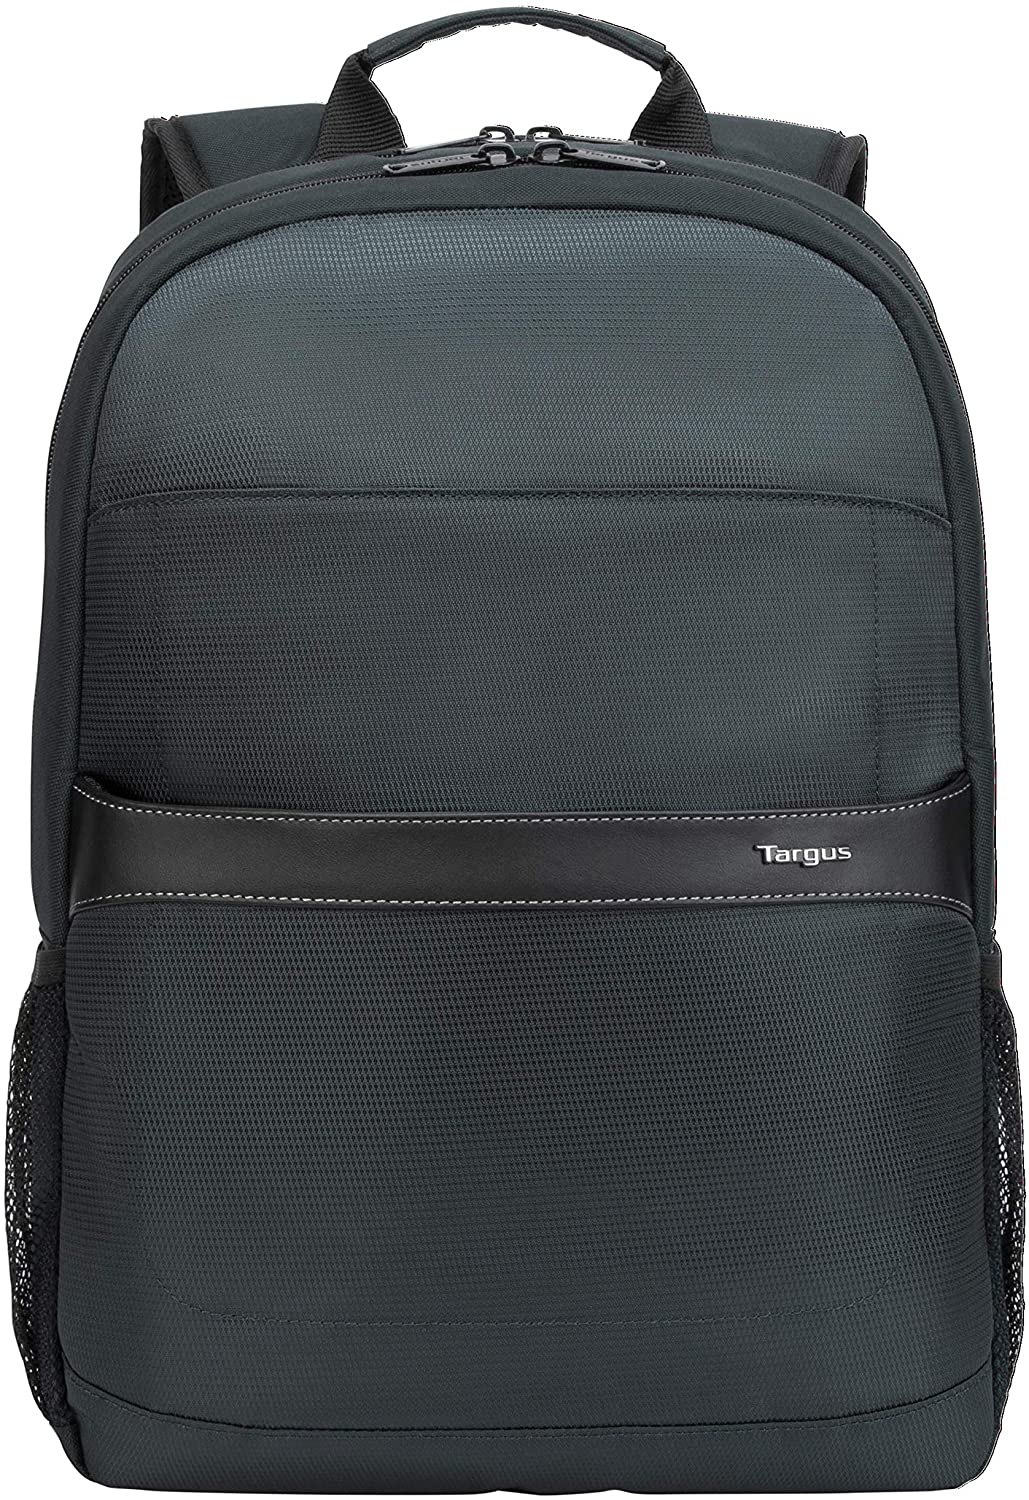 Targus GeoLite Advanced Modern Backpack for Sleek Professional Travel with Durable Water-Repellent, Padded Back Support, Trolley Strap, Protective Sleeve fits 12-15.6-Inch Laptop, Black (TSB96201GL)